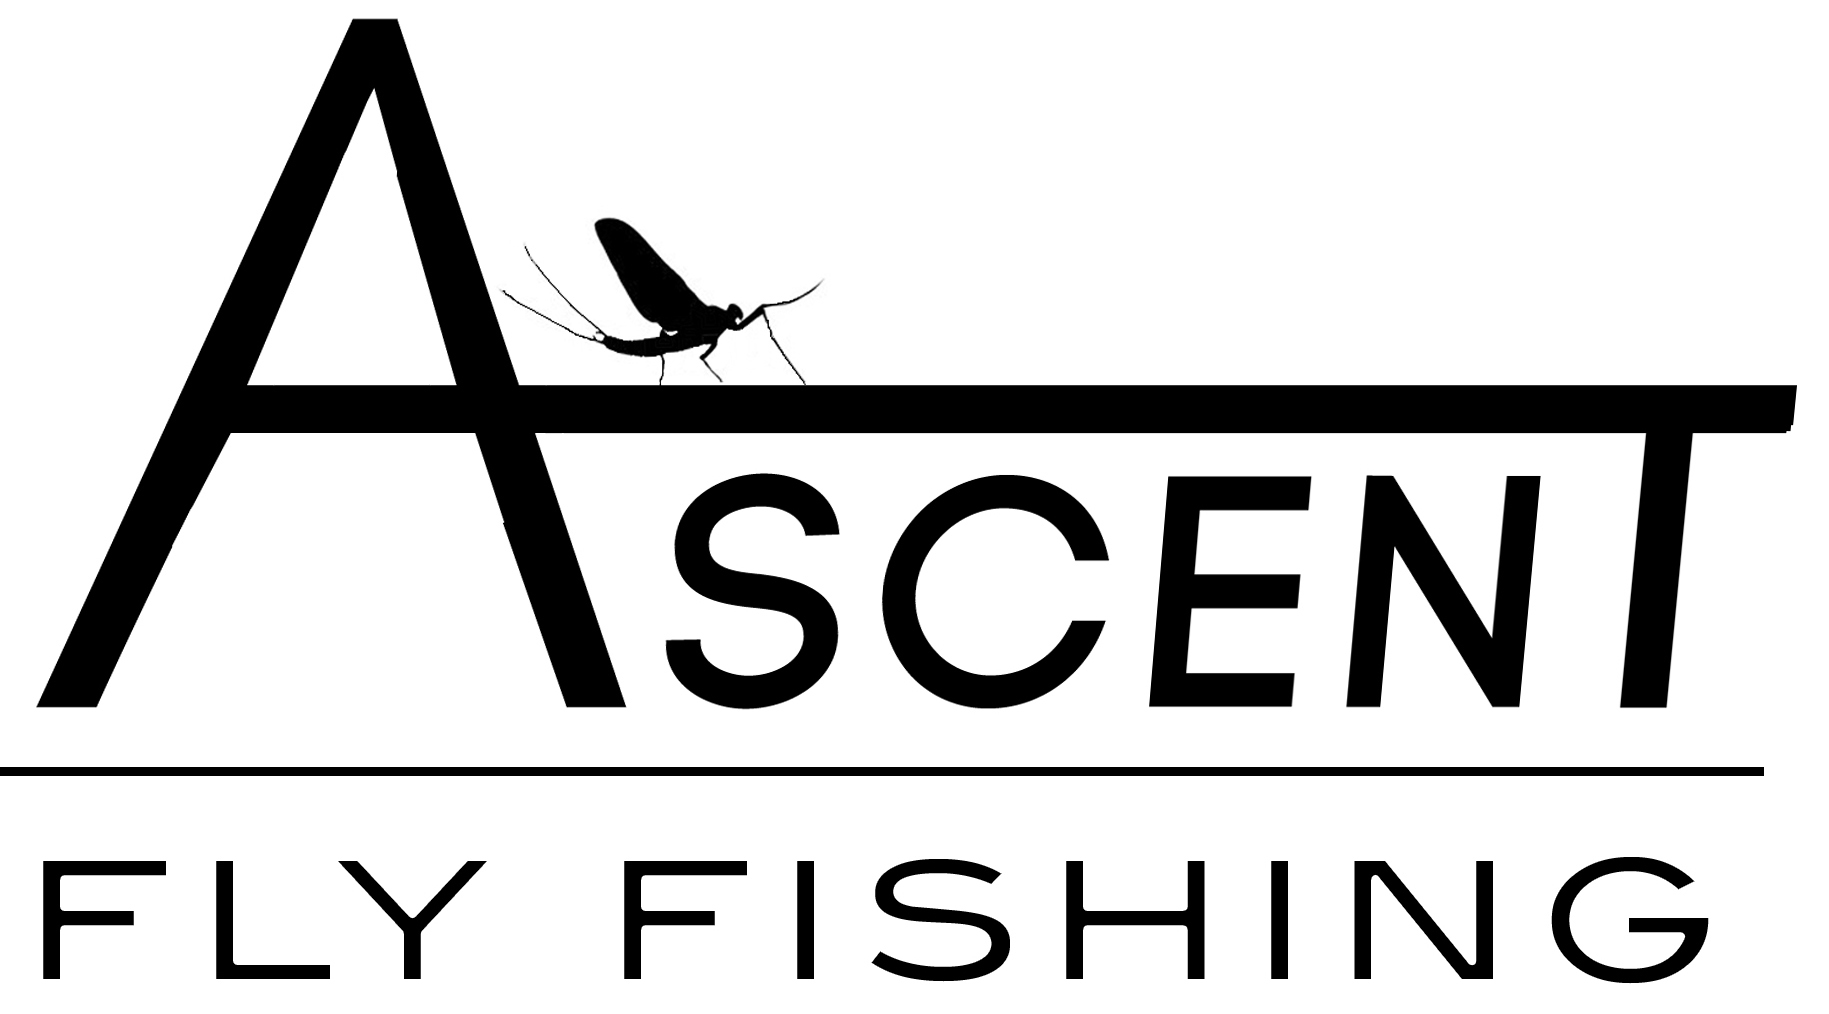 The nice guys at Ascent Fly Fishing invited us to have some of our gear at their Monthly Fly Sale. If you happen to be in the Front Range of Colorado this coming weekend, you are invited to swing by their monthly open door sale and take advantage of unbeatable prices on flies, tools, tippet, leaders, and fly fishing accessories. Or even score some of our Junk!!   August 16th & 17thfrom8am - 5pm     The sale will be held at:        8157 W Morraine Dr.Littleton, CO 80128 (Click For Map)